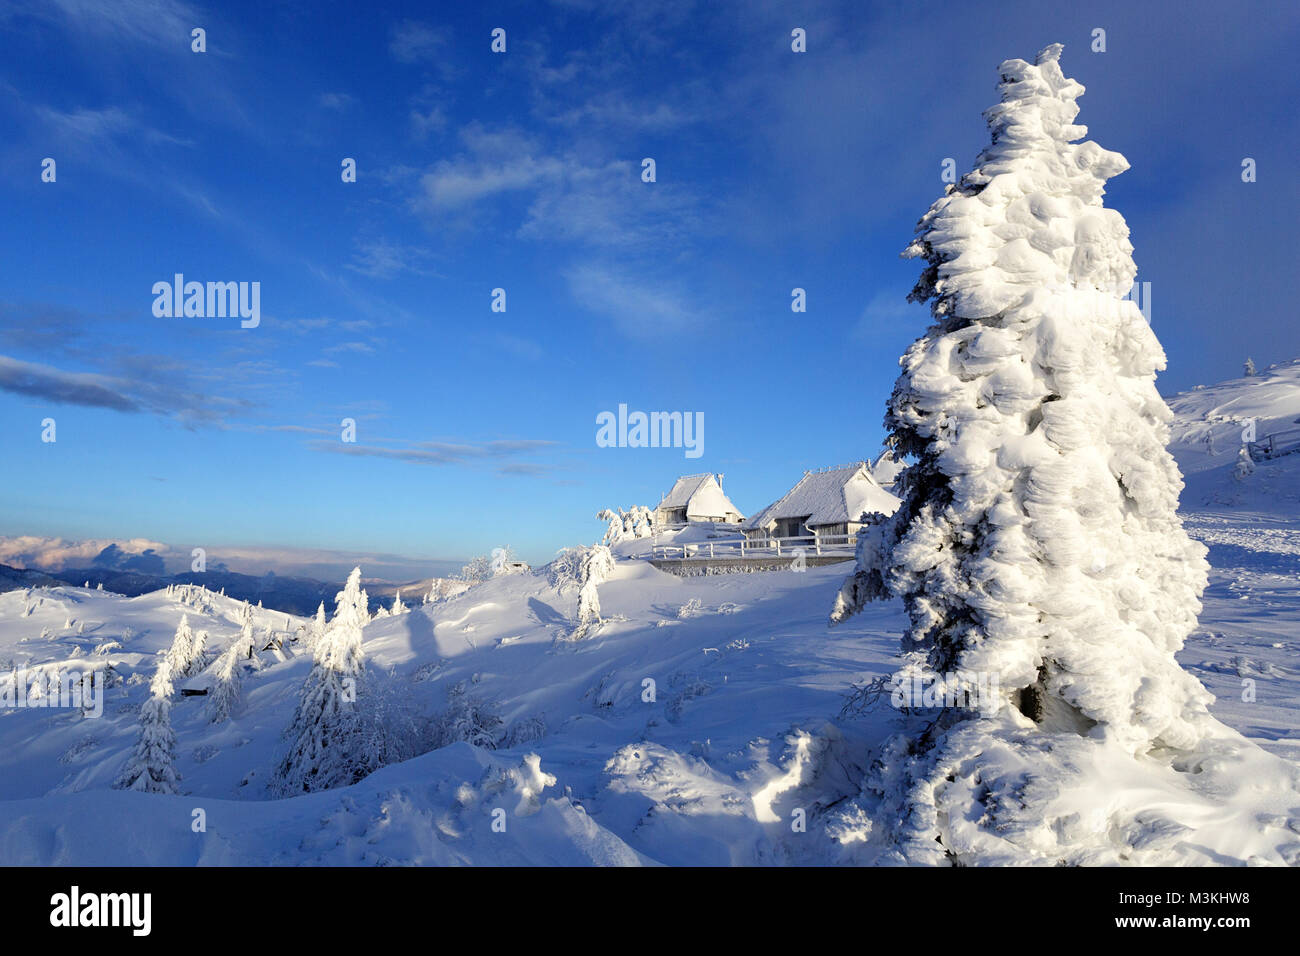 Winter scene on a snow covered mountain with frozen cabins and pine trees. Stock Photo